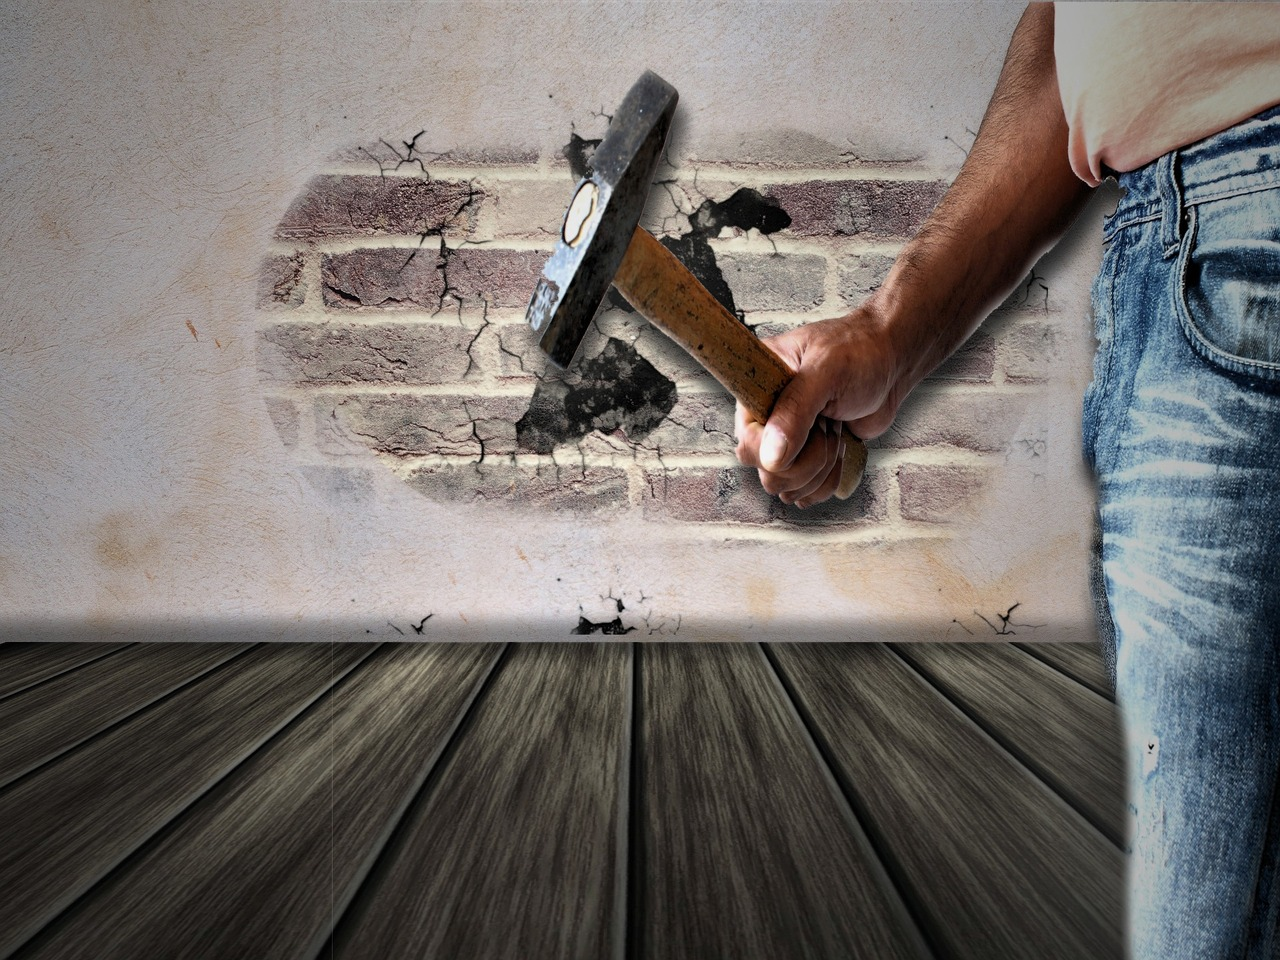 Home improvements that return at resale